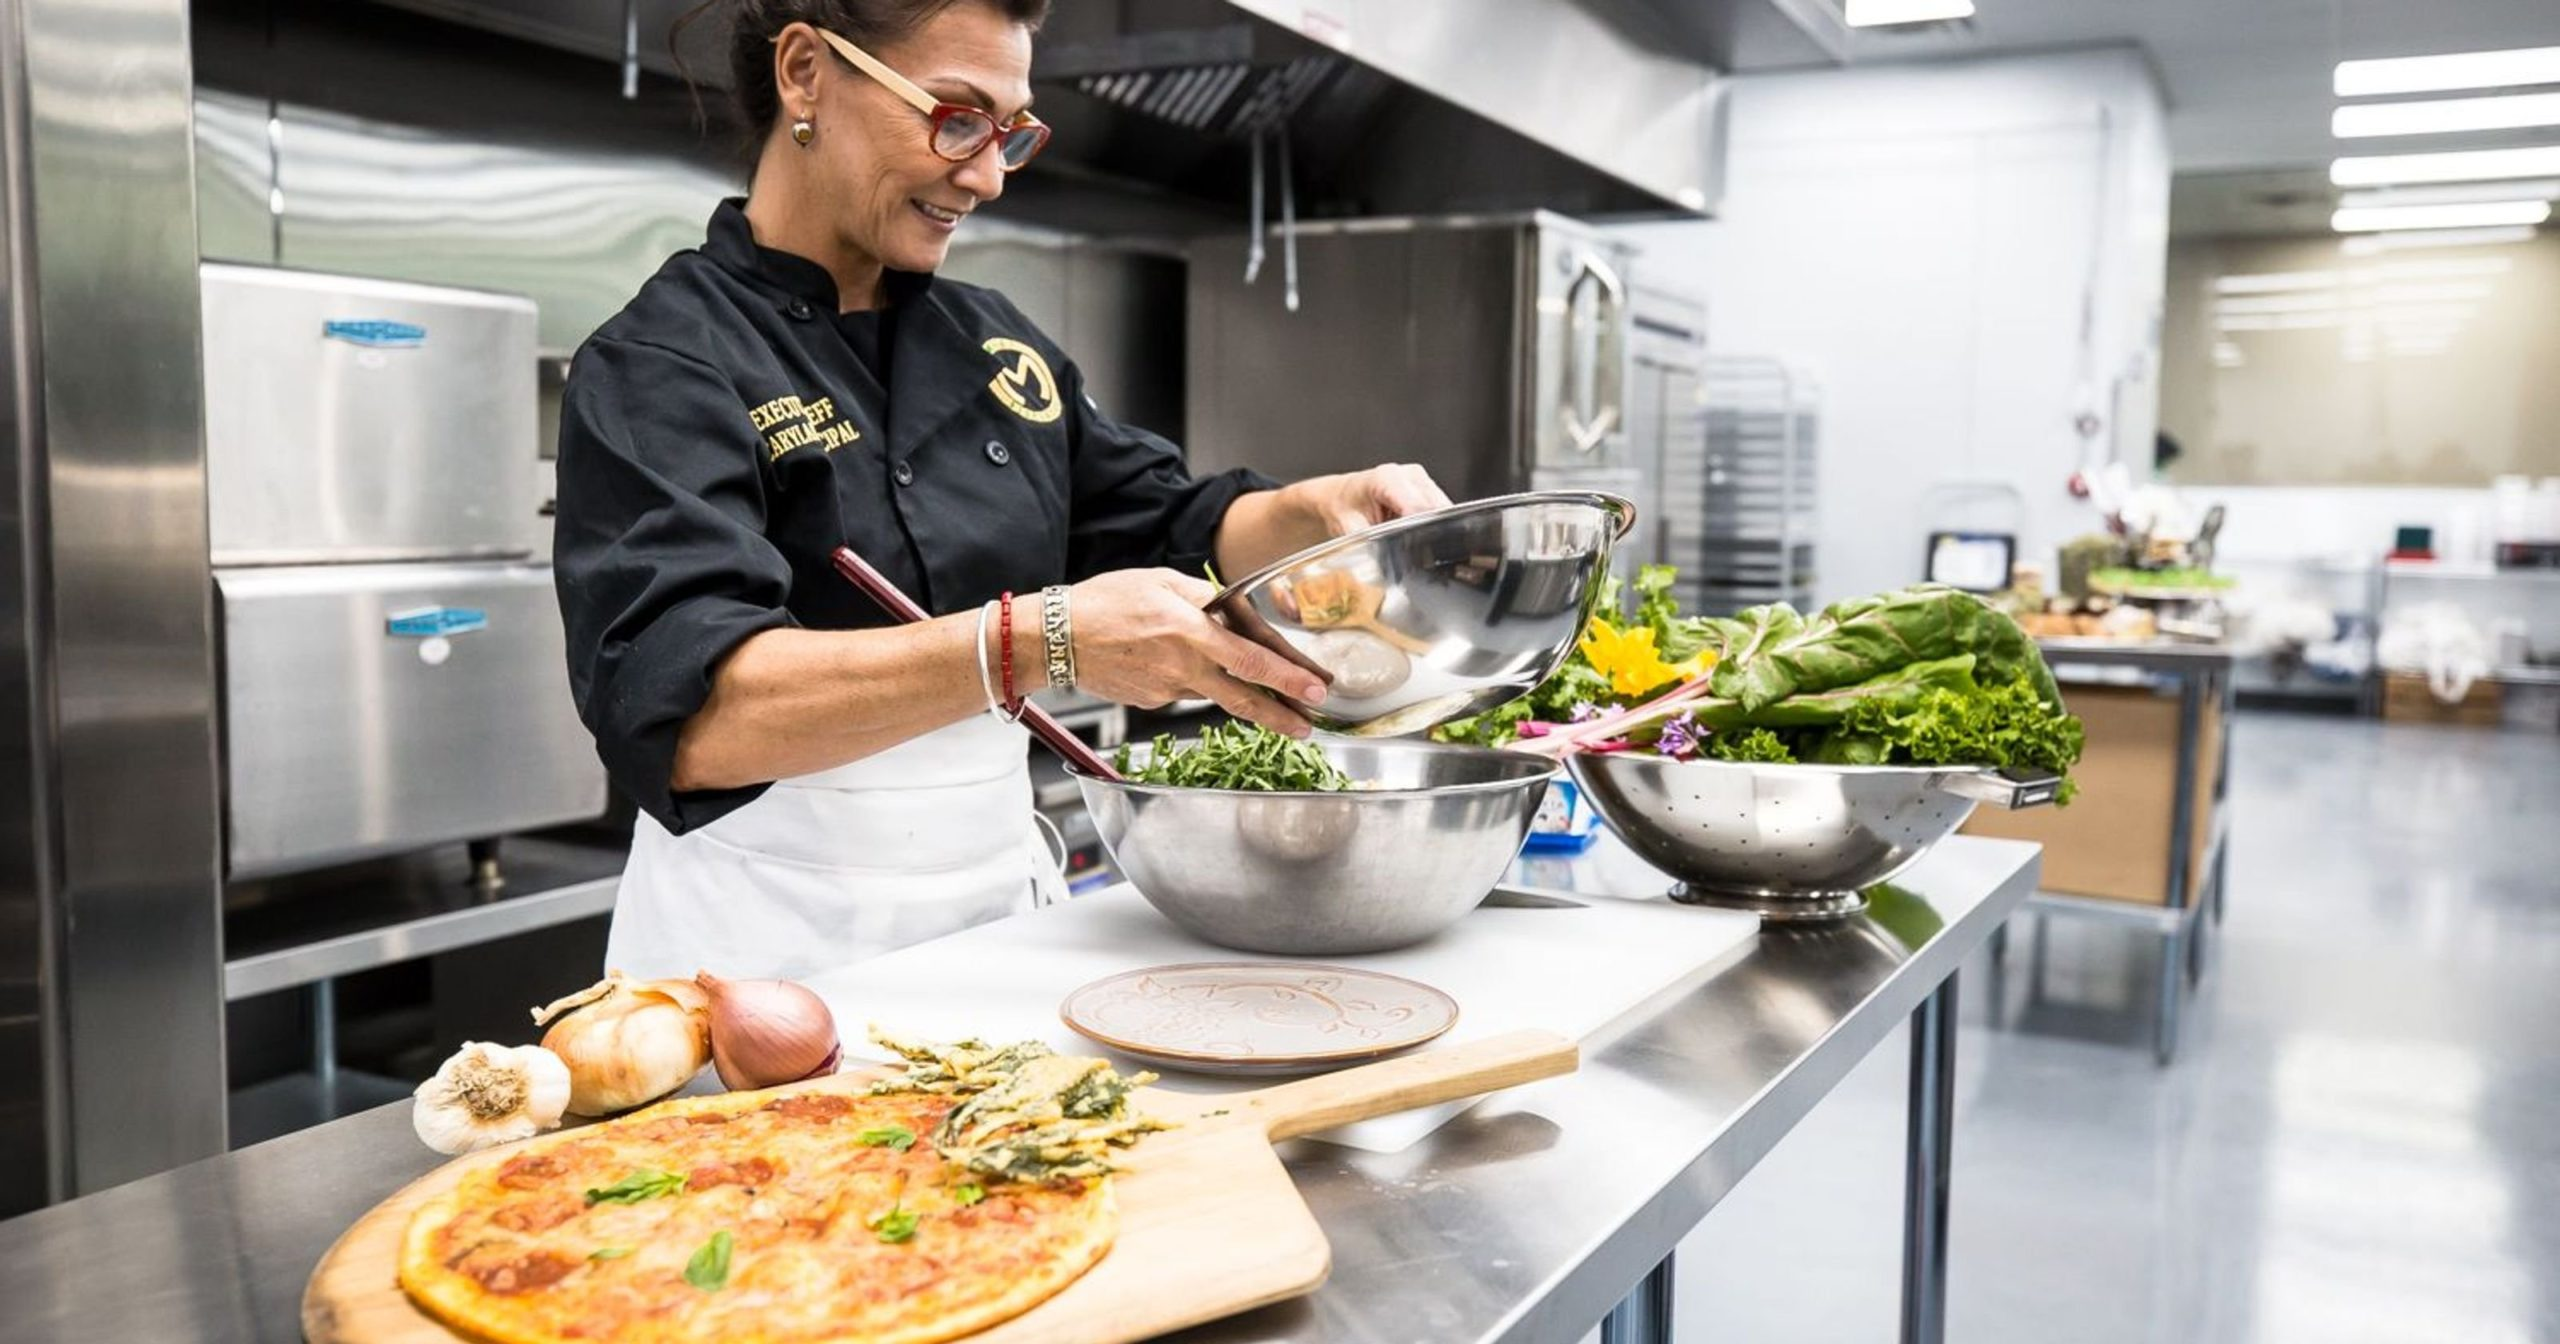 Pizza infused with cannabis on the menu at new medical marijuana kitchen in Tempe